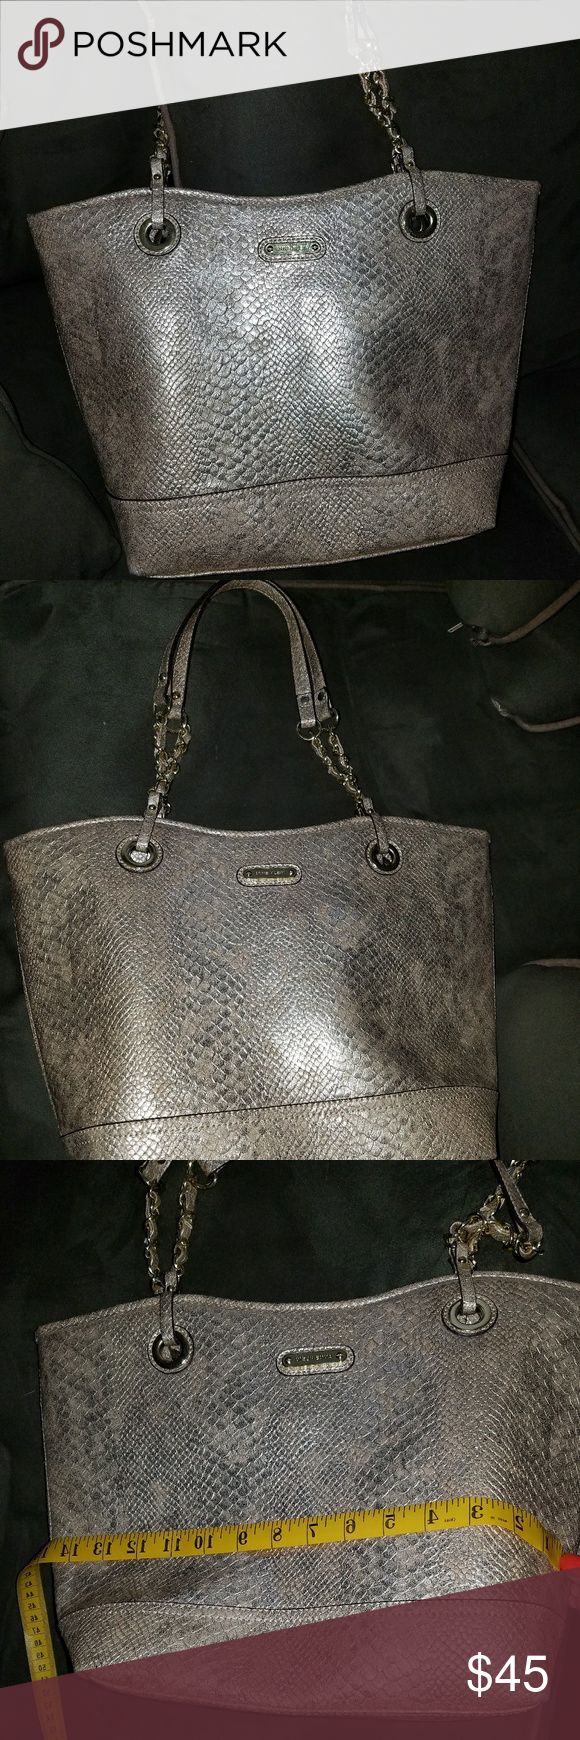 New Anne Klein gold medium tote. No tag, mint cond New Anne Klein Medium Tote. Chain Link handles. Lined with a beautiful floral print. Gift, never used. Mint  condition. Anne Klein Bags Totes